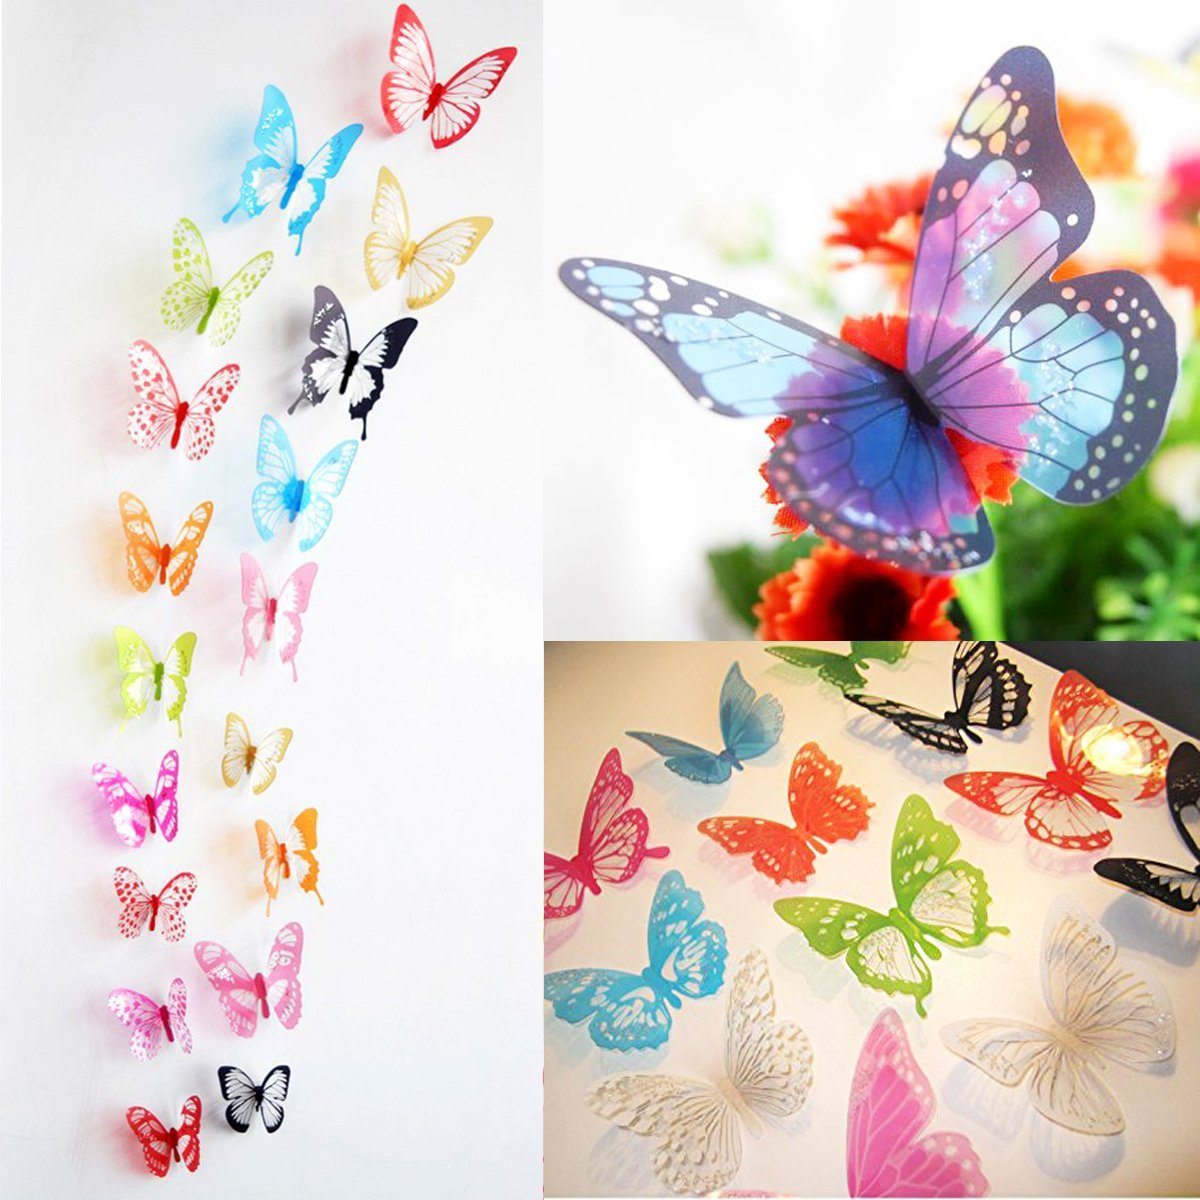 Amazon ElecMotive 36 Pcs 3D Color Crystal Butterfly Wall Stickers With Adhesive Art Decal Satin Paper Butterflies Home DIY Decor Removable